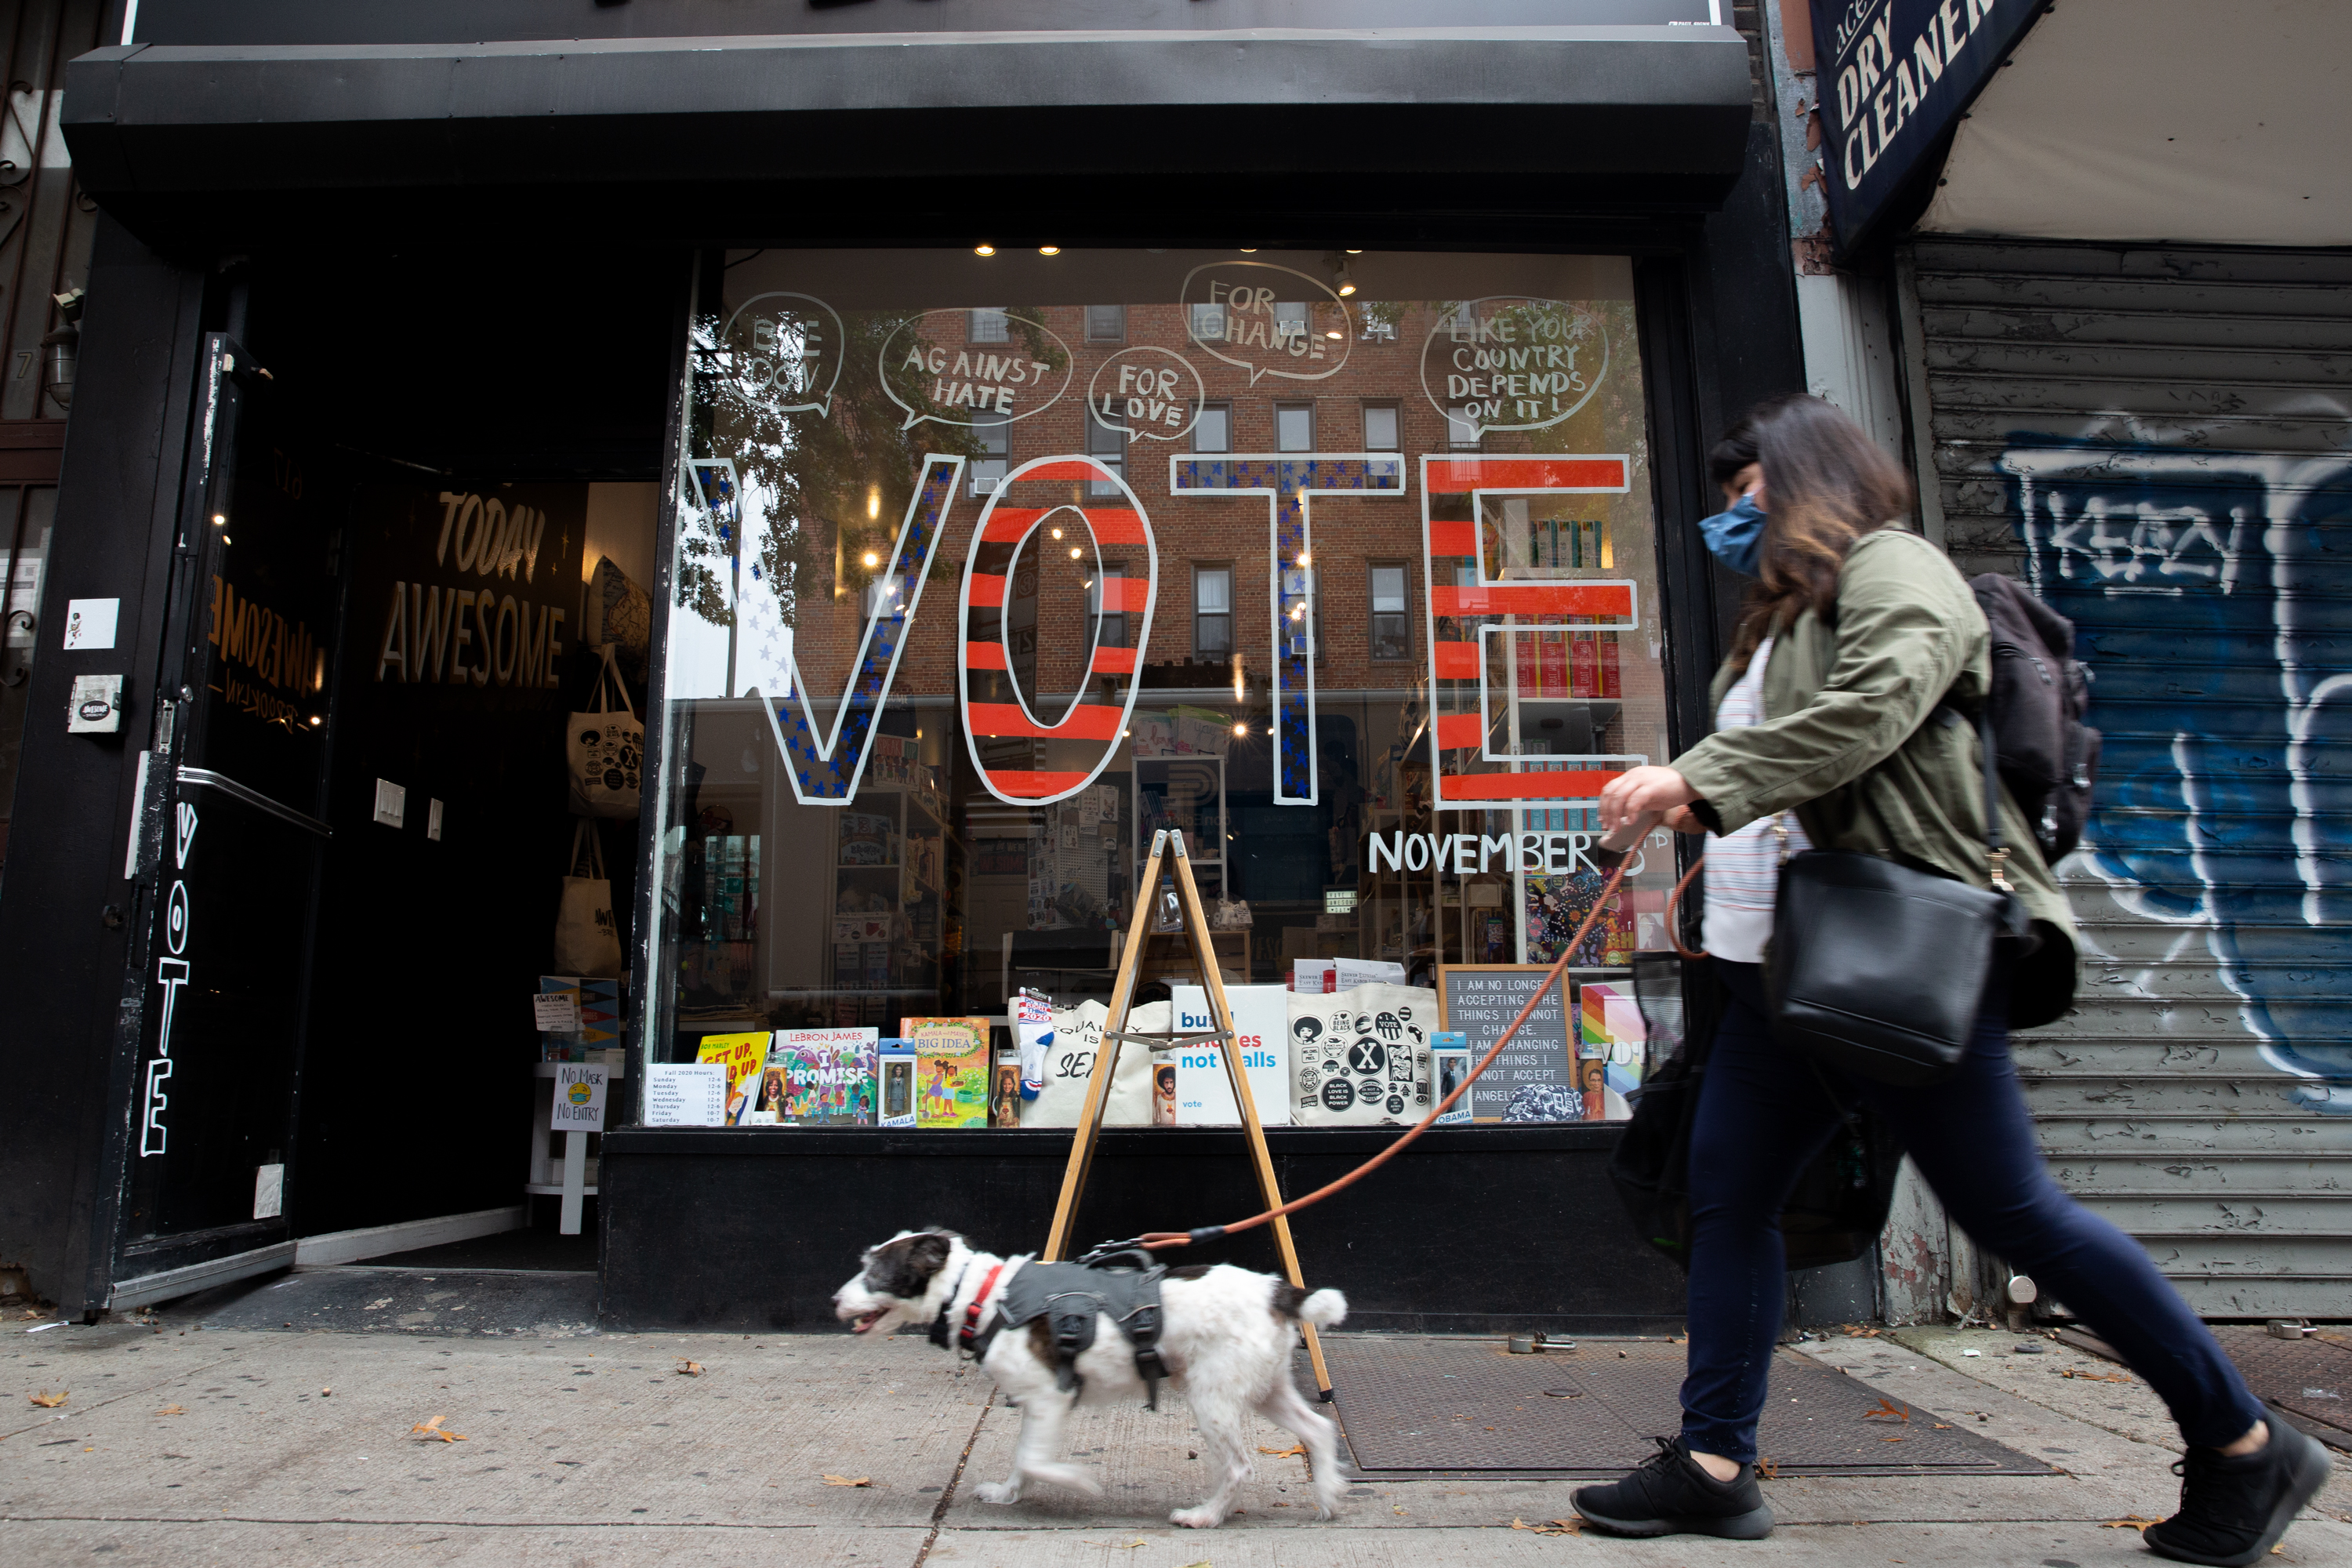 A Prospect Lefferts Gardens business encouraged people to vote ahead of the 2020 election, Oct. 21, 2020.